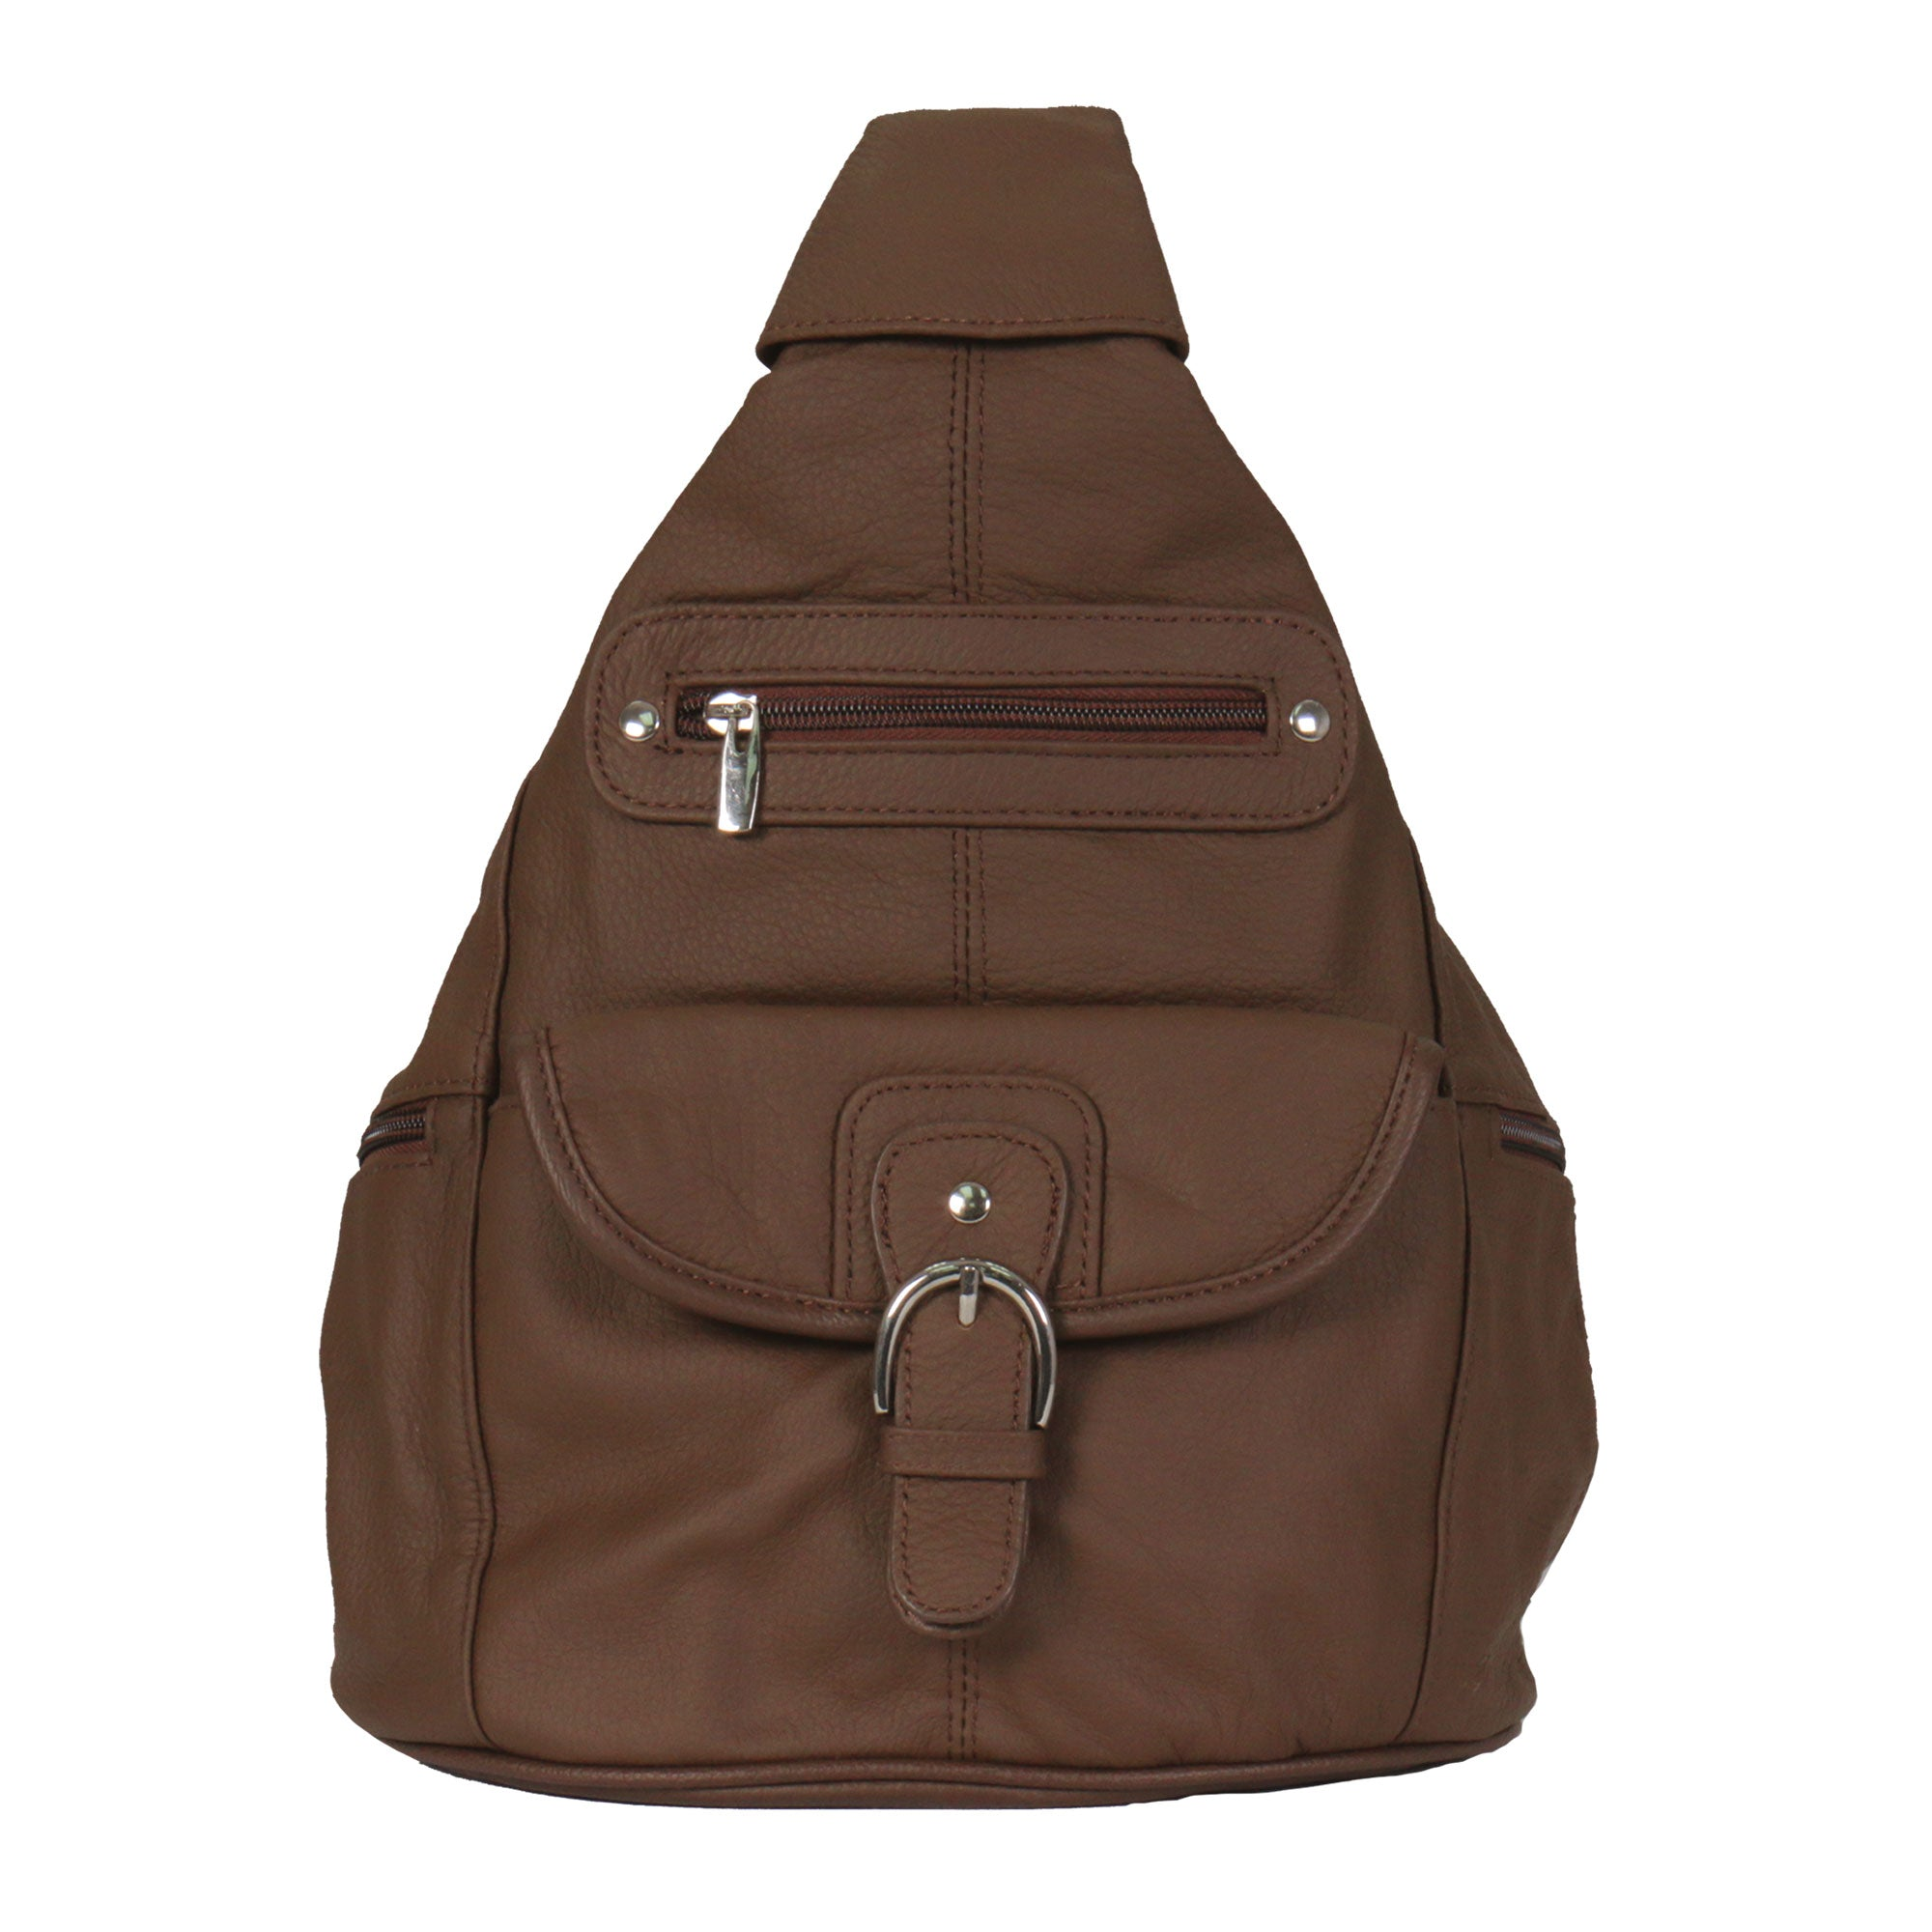 Hot Leathers Genuine Brown Leather Backpack Purse